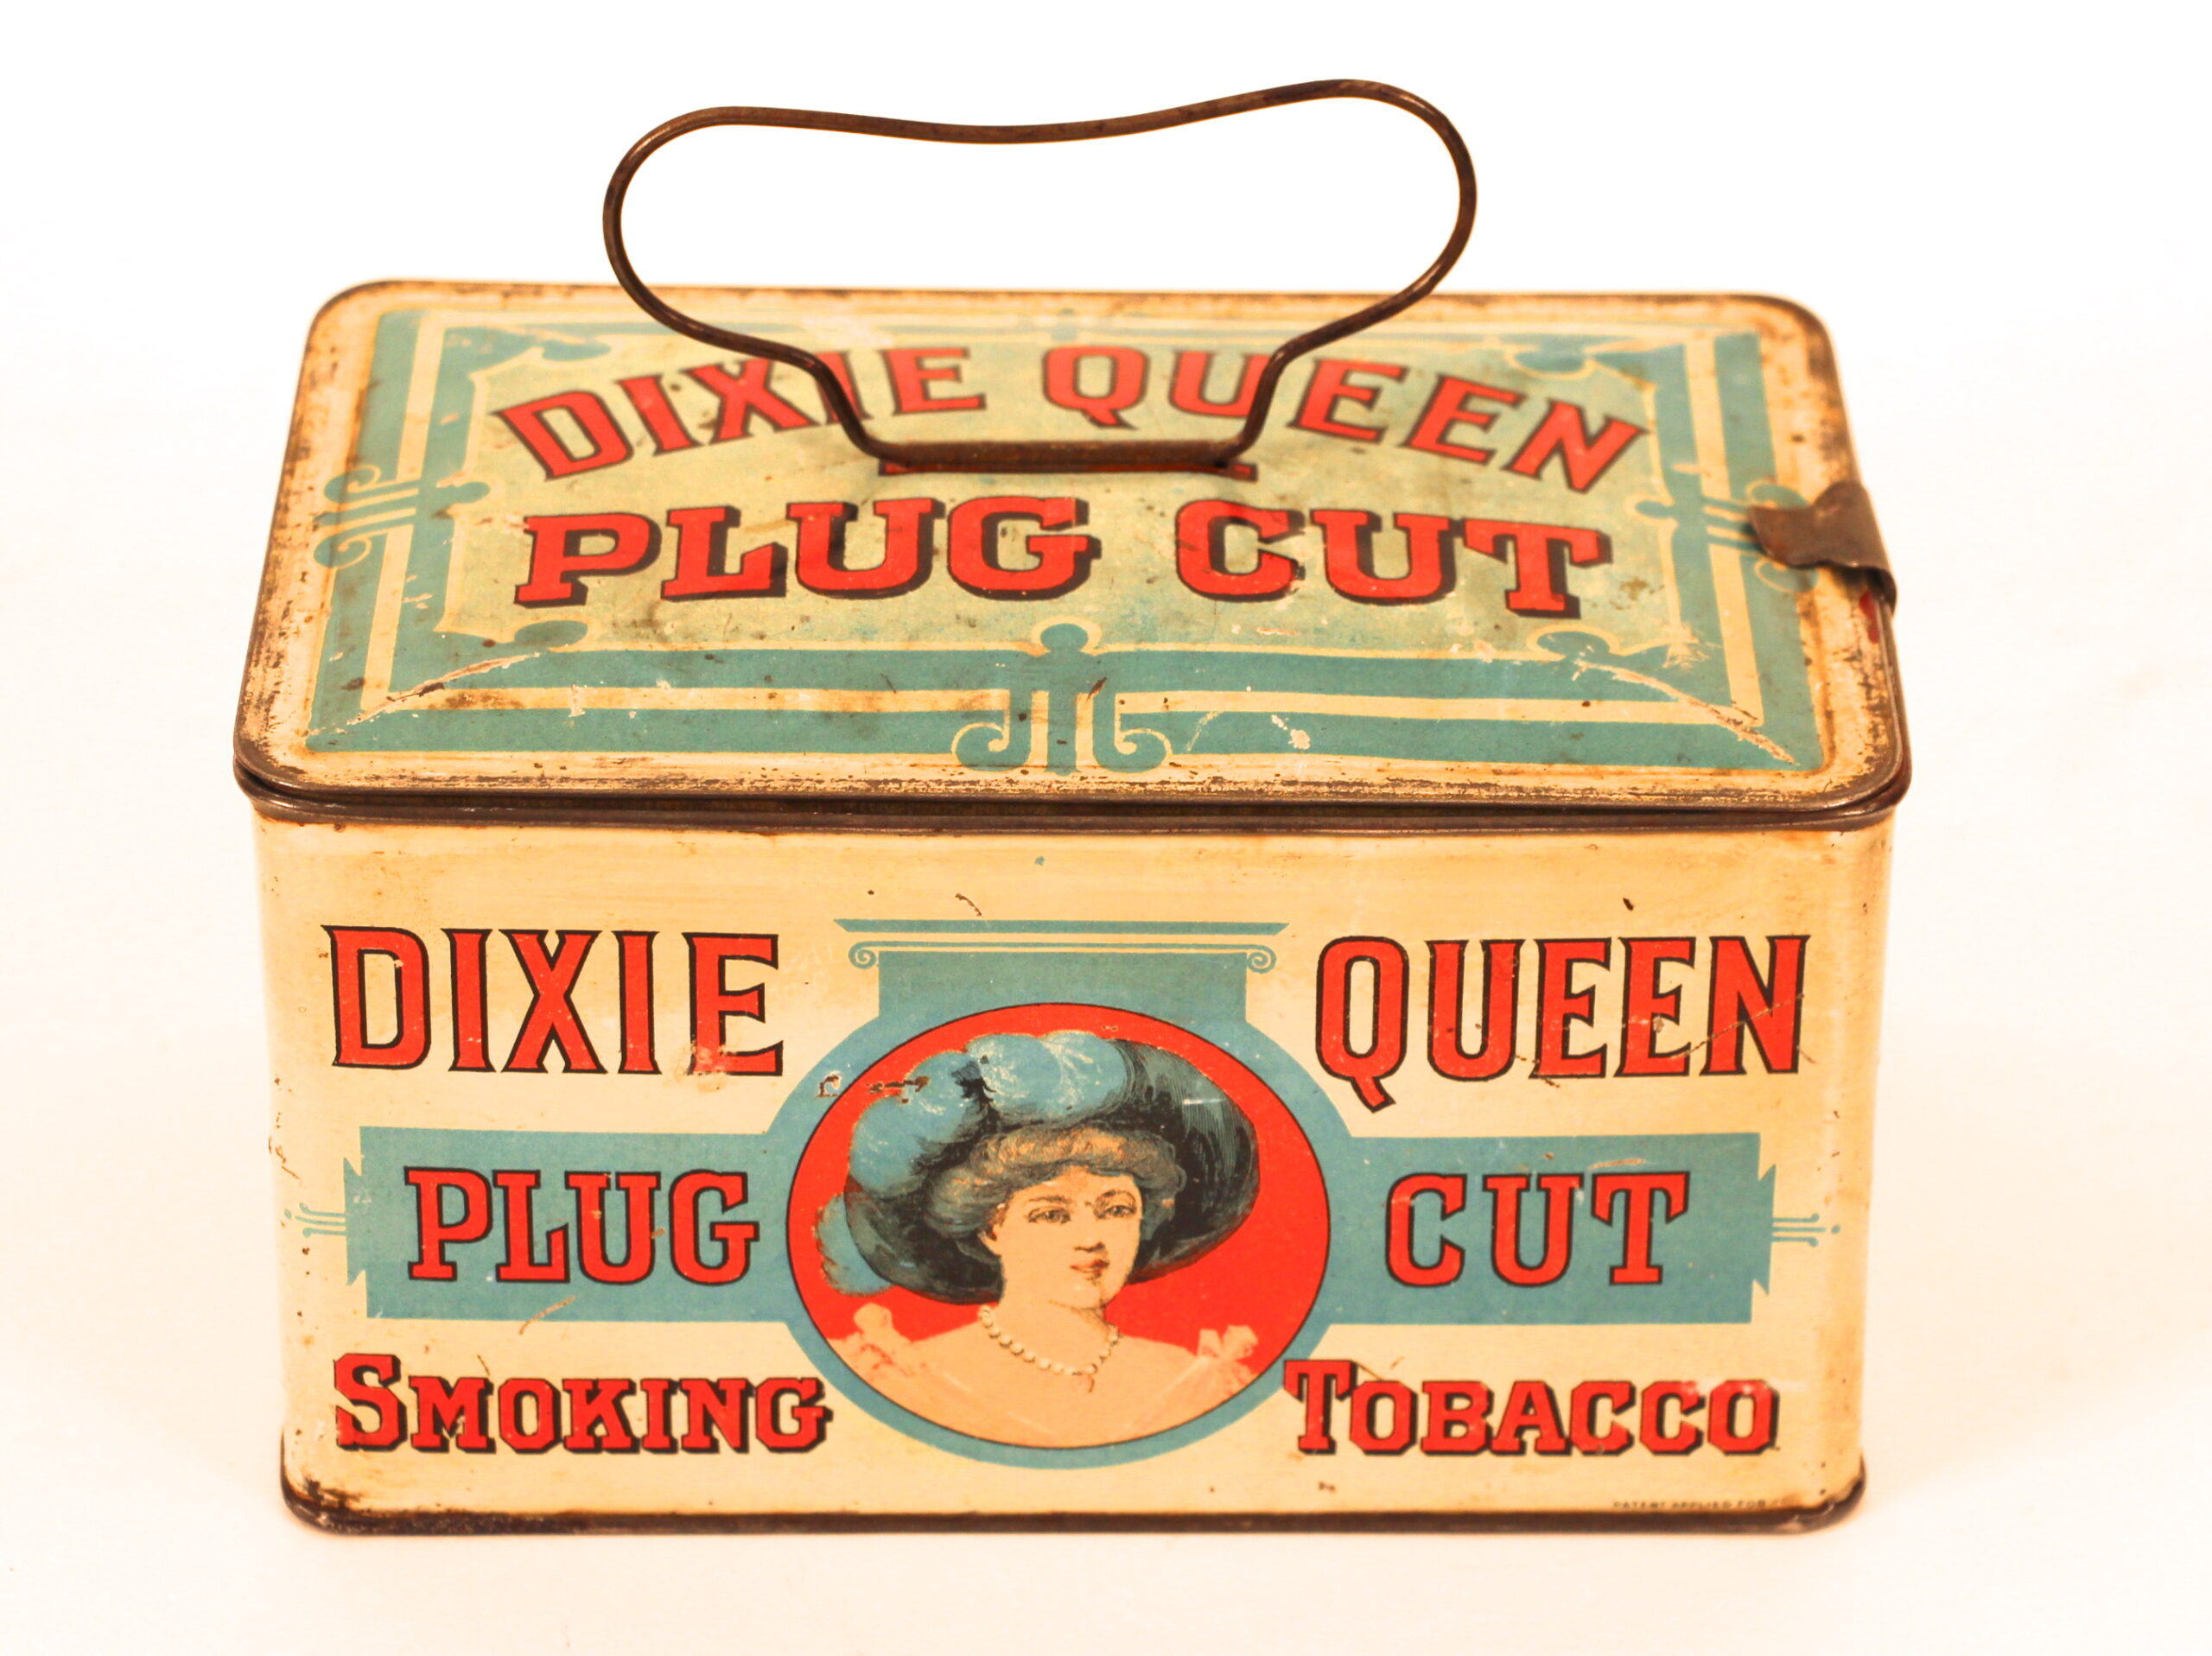 Dixie Queen Plug Cut Lunch Box Tobacco Tin. Circa 1910